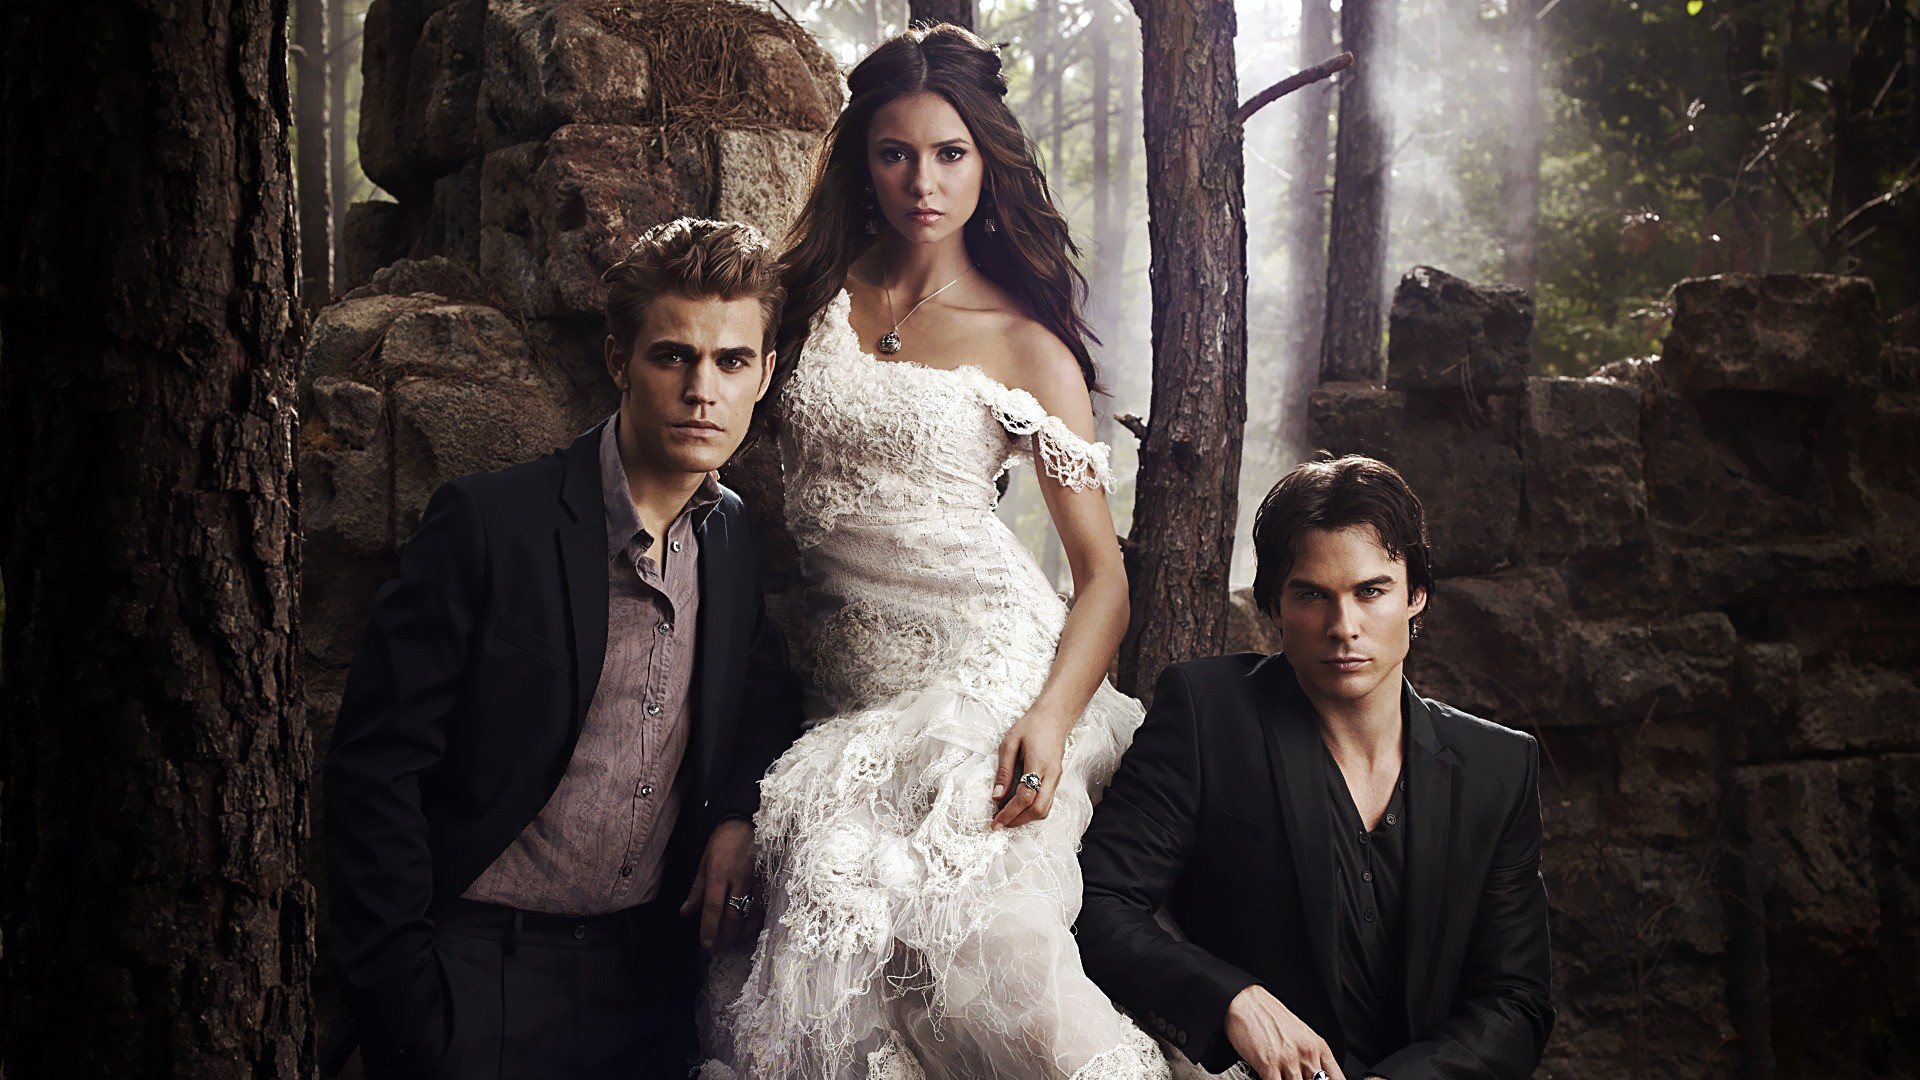 Wallpaper The Vampire Diaries: Best The Vampire Diaries Wallpaper